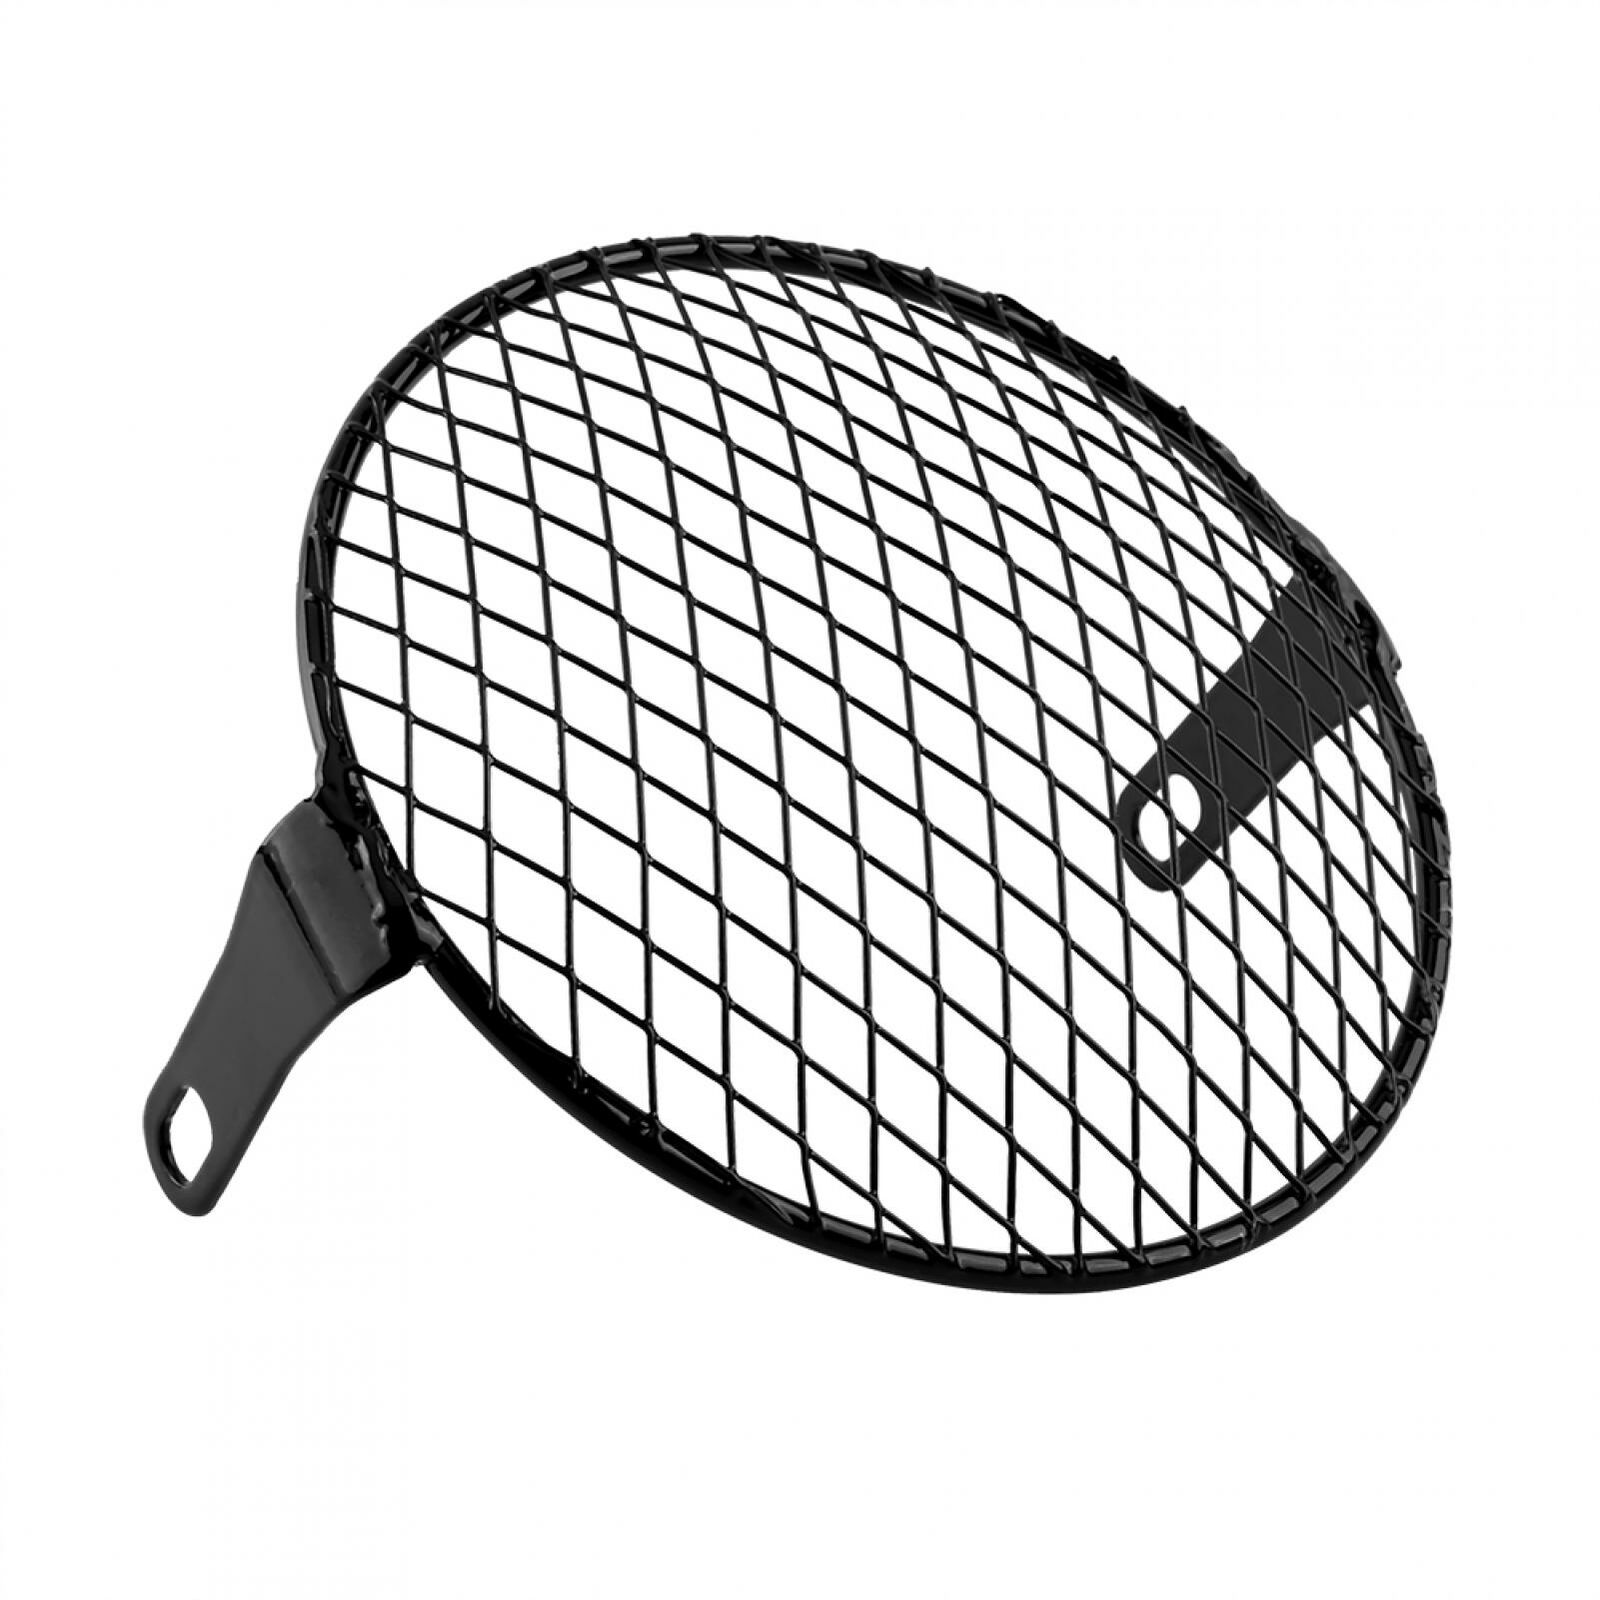 Headlight Cover Mask Convenient Practical For Home